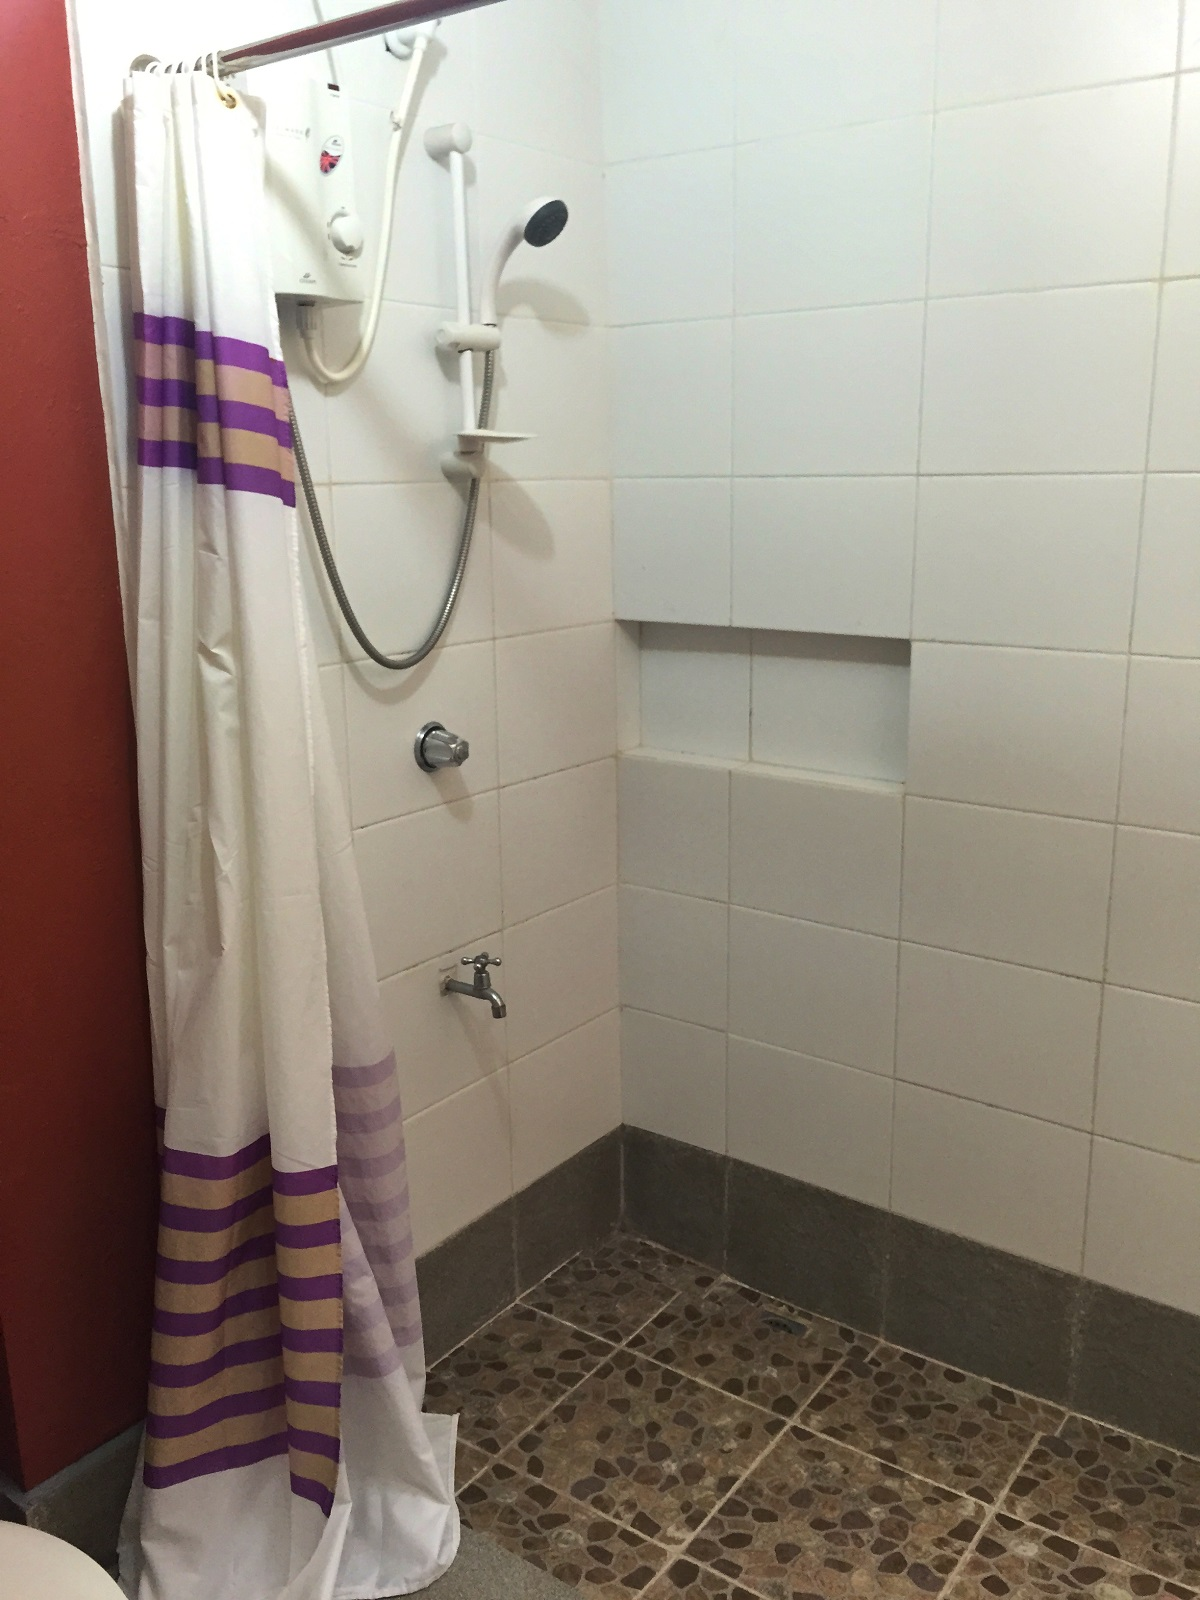 shower at Agos Rooms and Beds, Boracay, Philippines